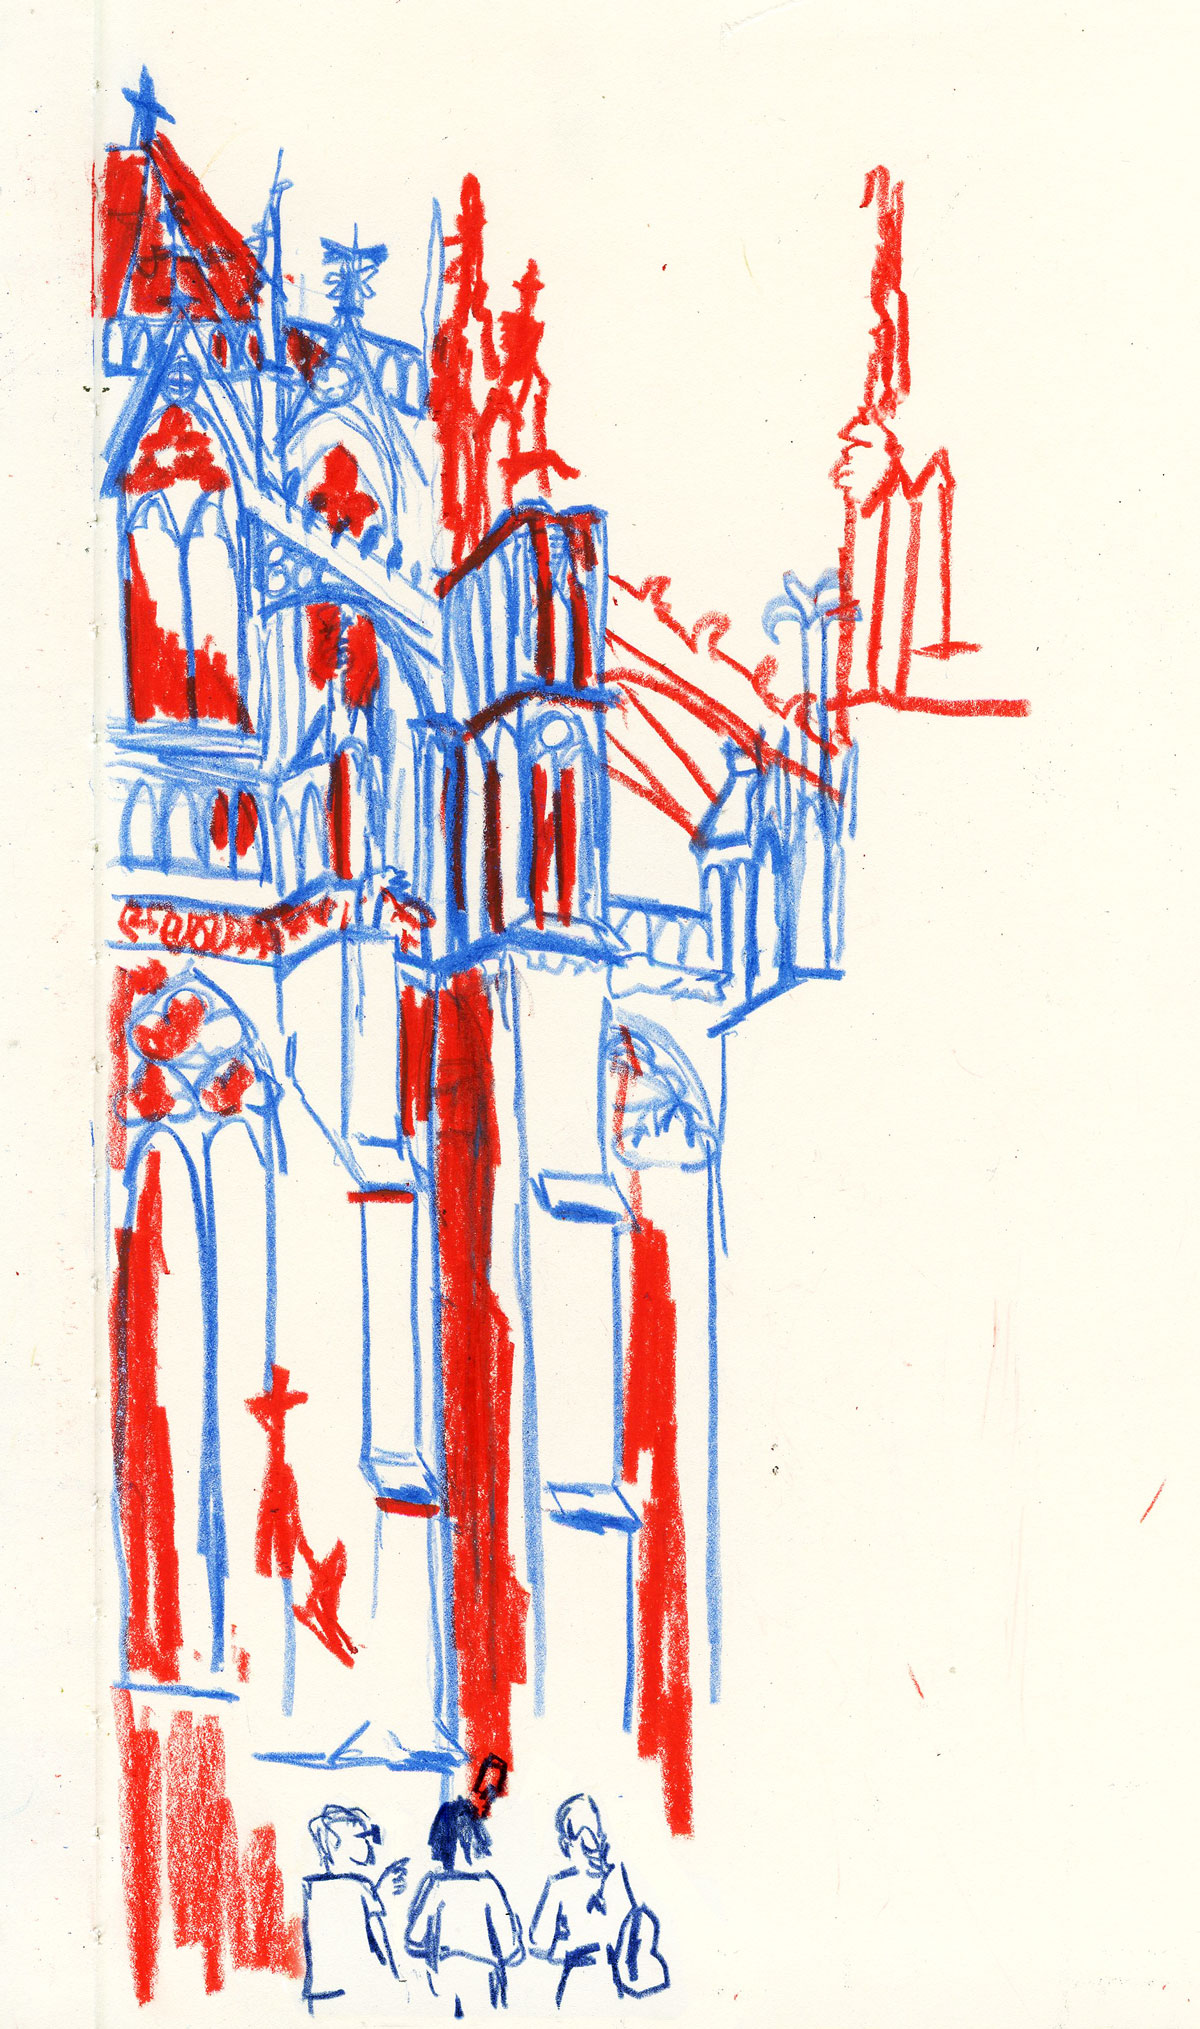 Illustration of Dom church Utrecht by Ellen Vesters picture book illustrator